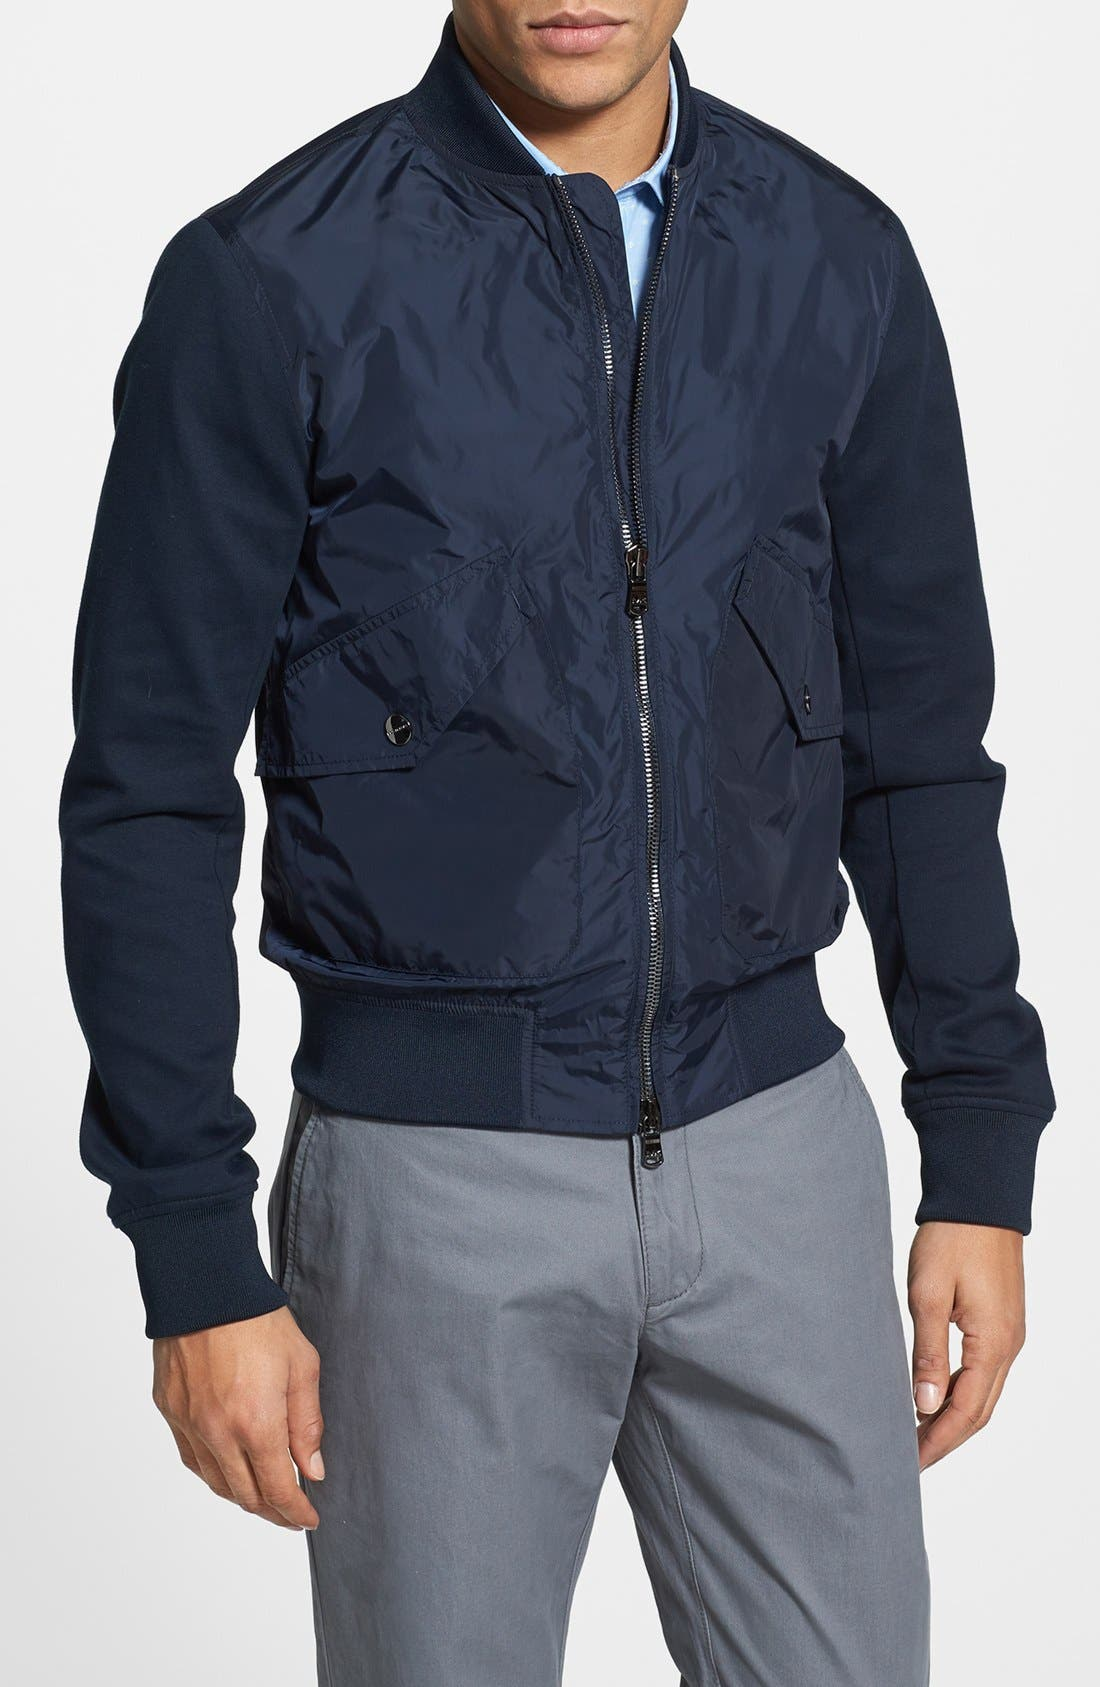 Alternate Image 1 Selected - Michael Kors 'Baseball' Bomber Jacket